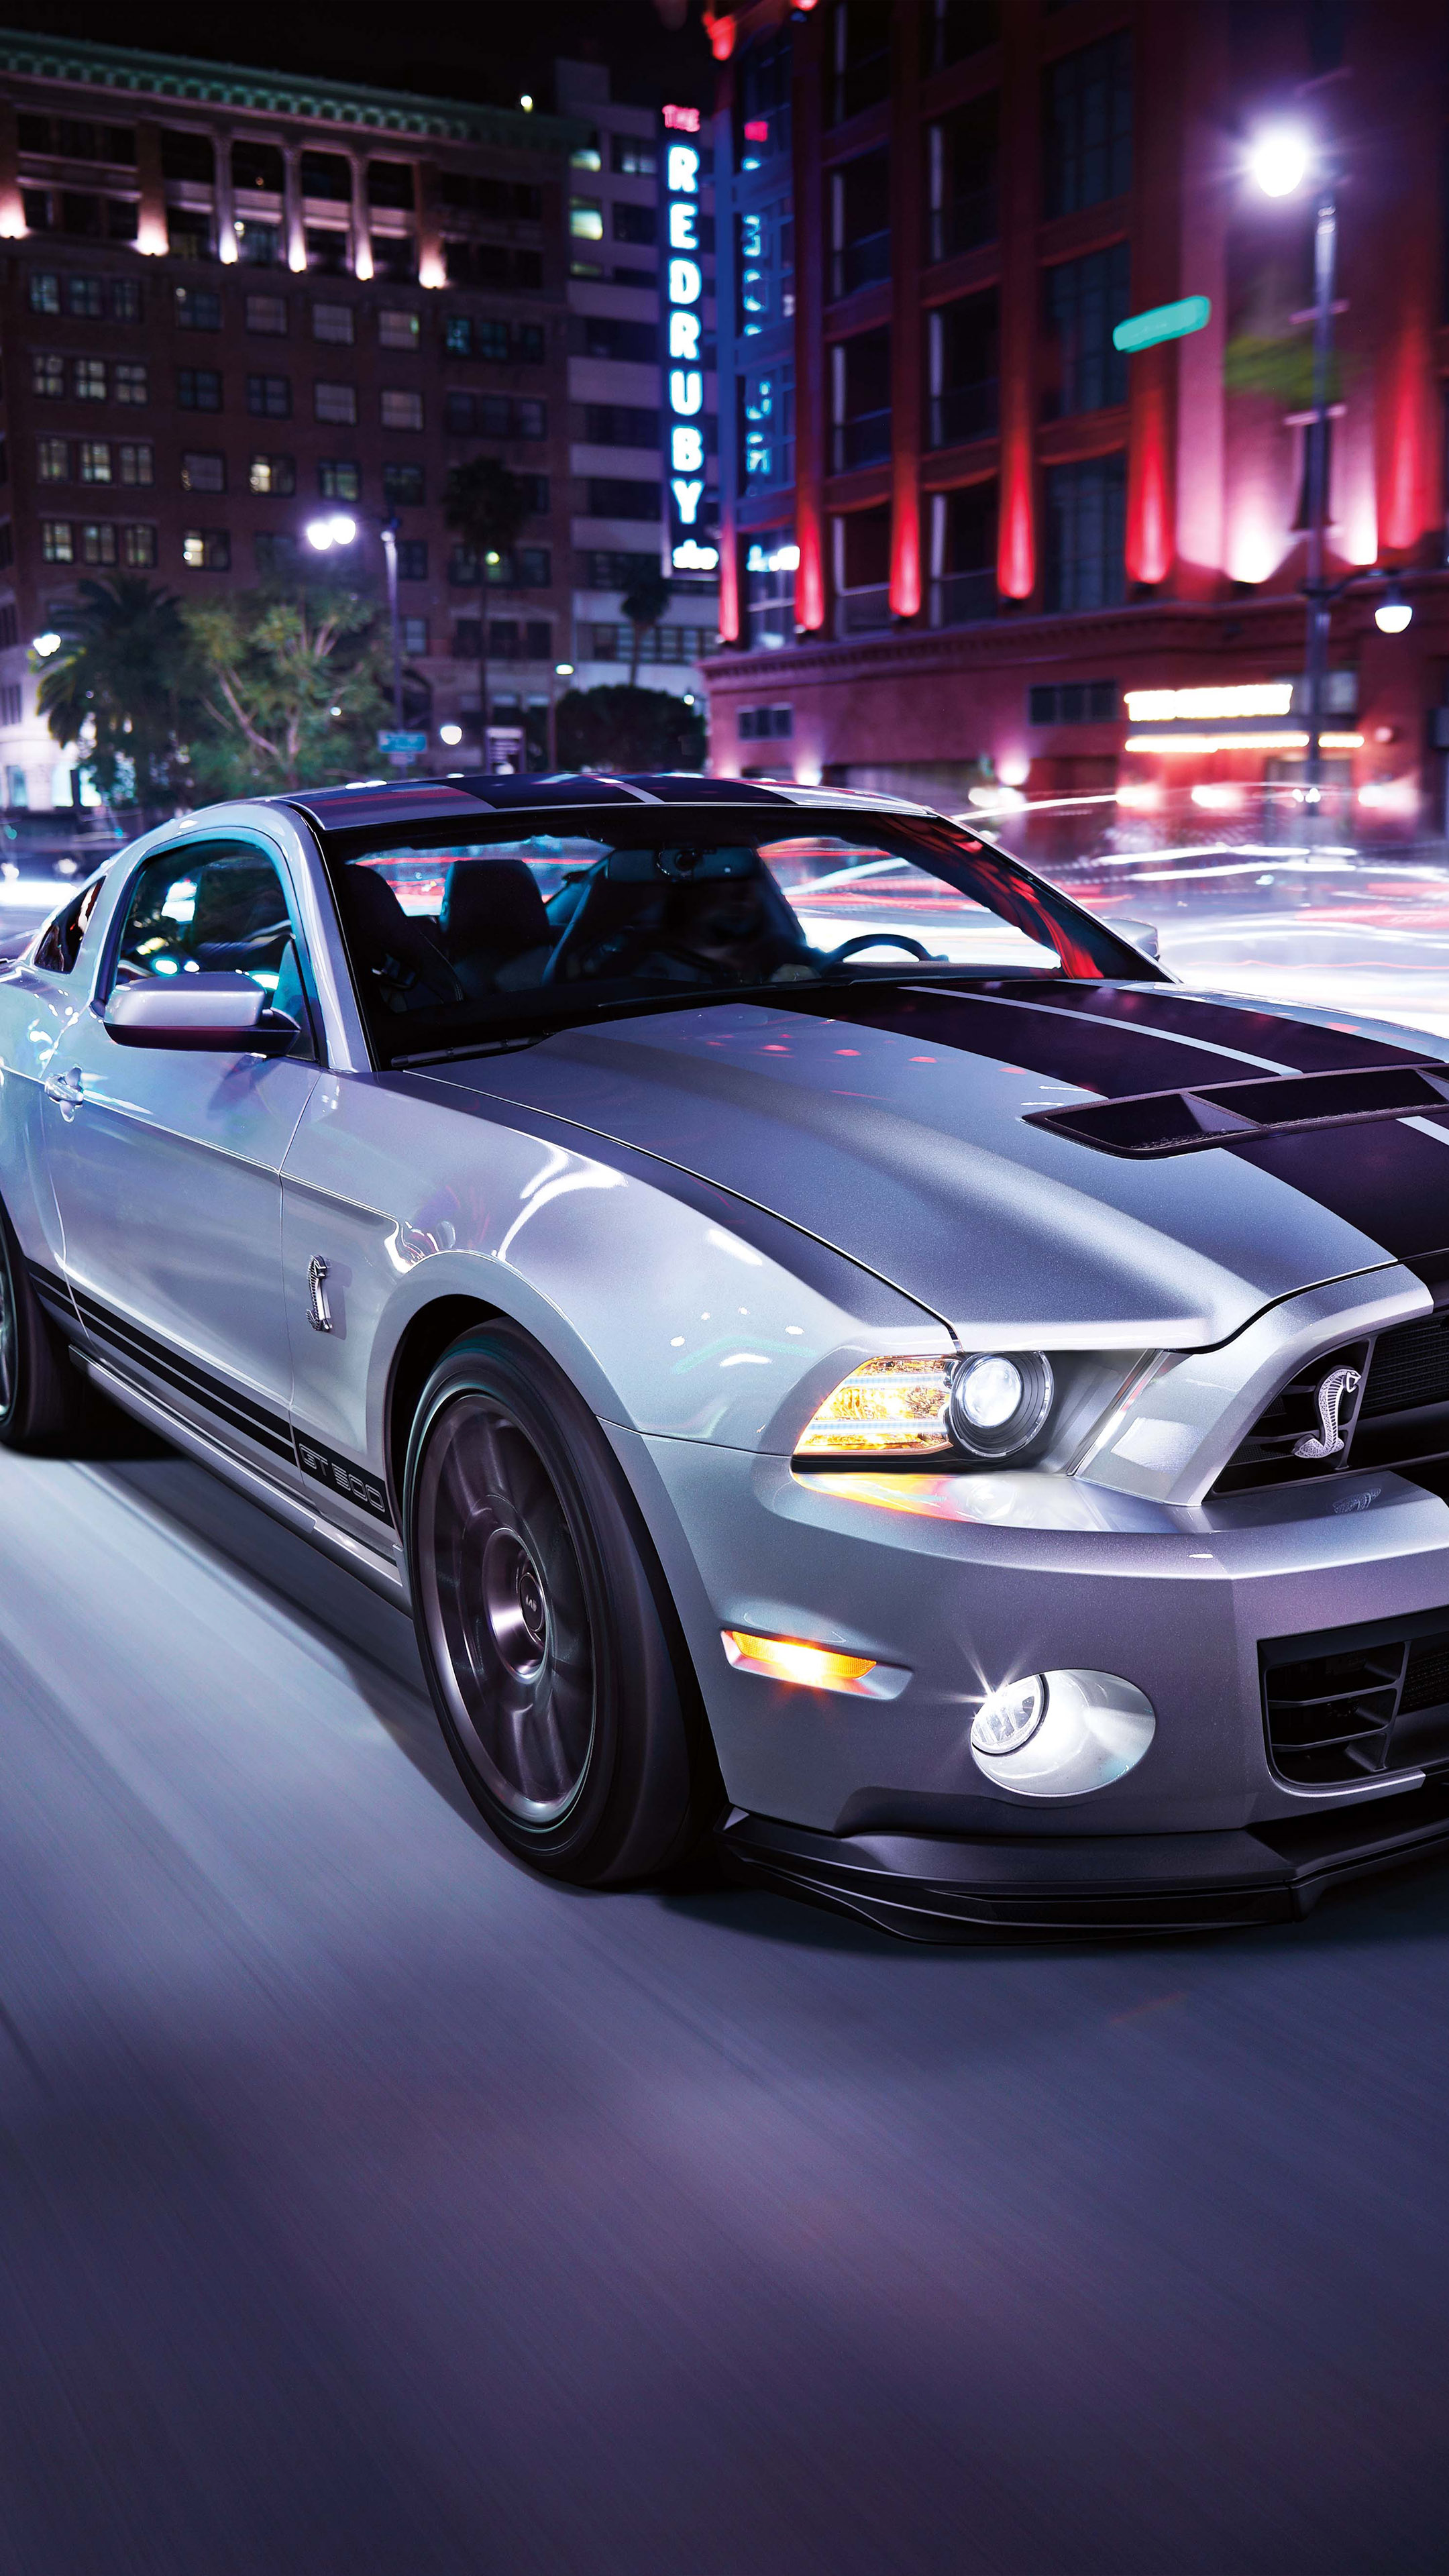 Download Ford Mustang Night Street Free Pure 4k Ultra Hd Mobile